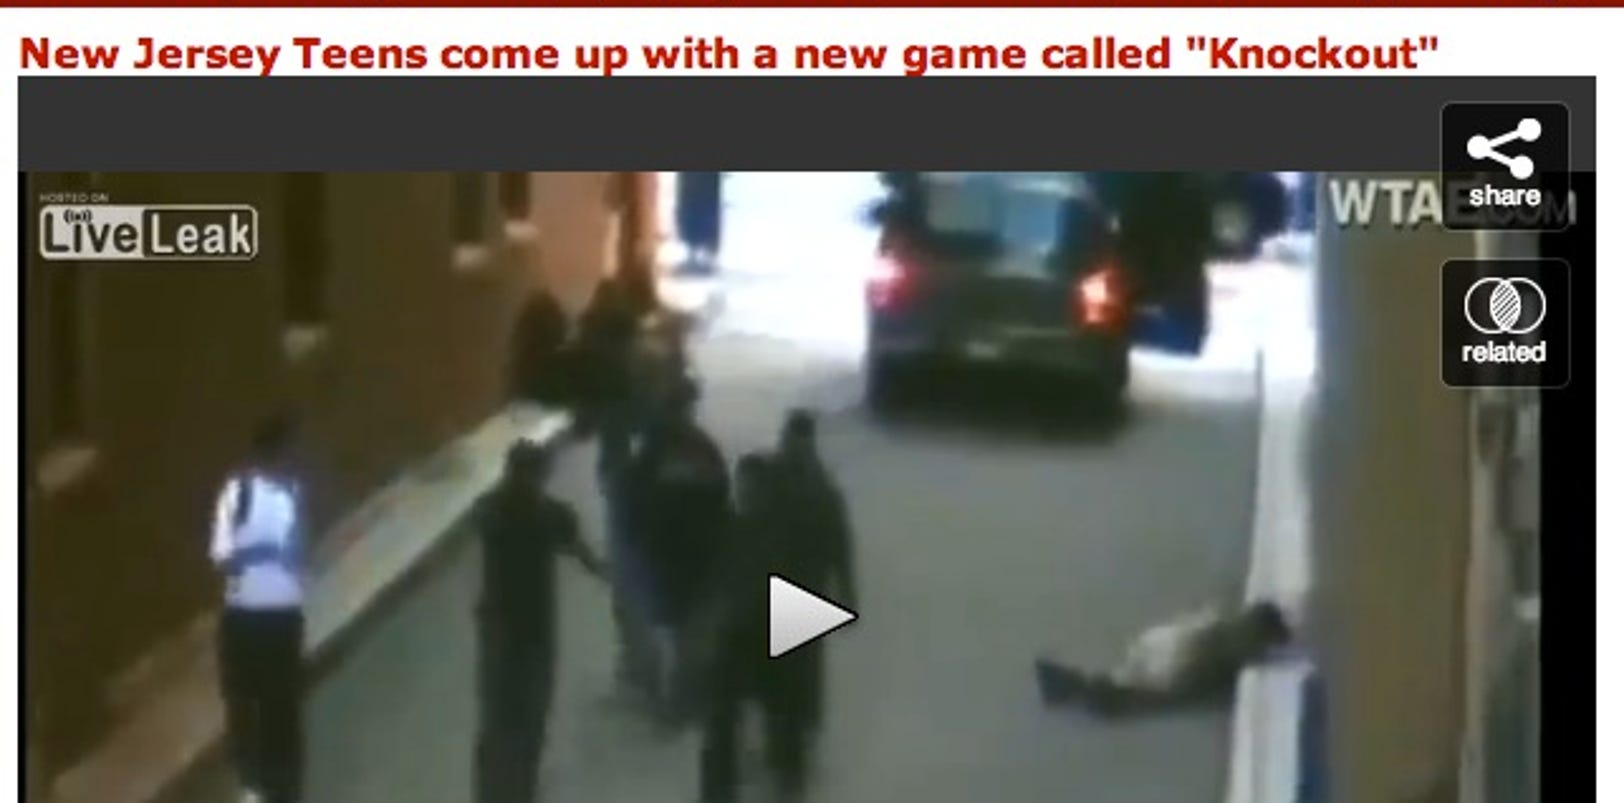 'Knockout game' leads to arrests, more police patrols